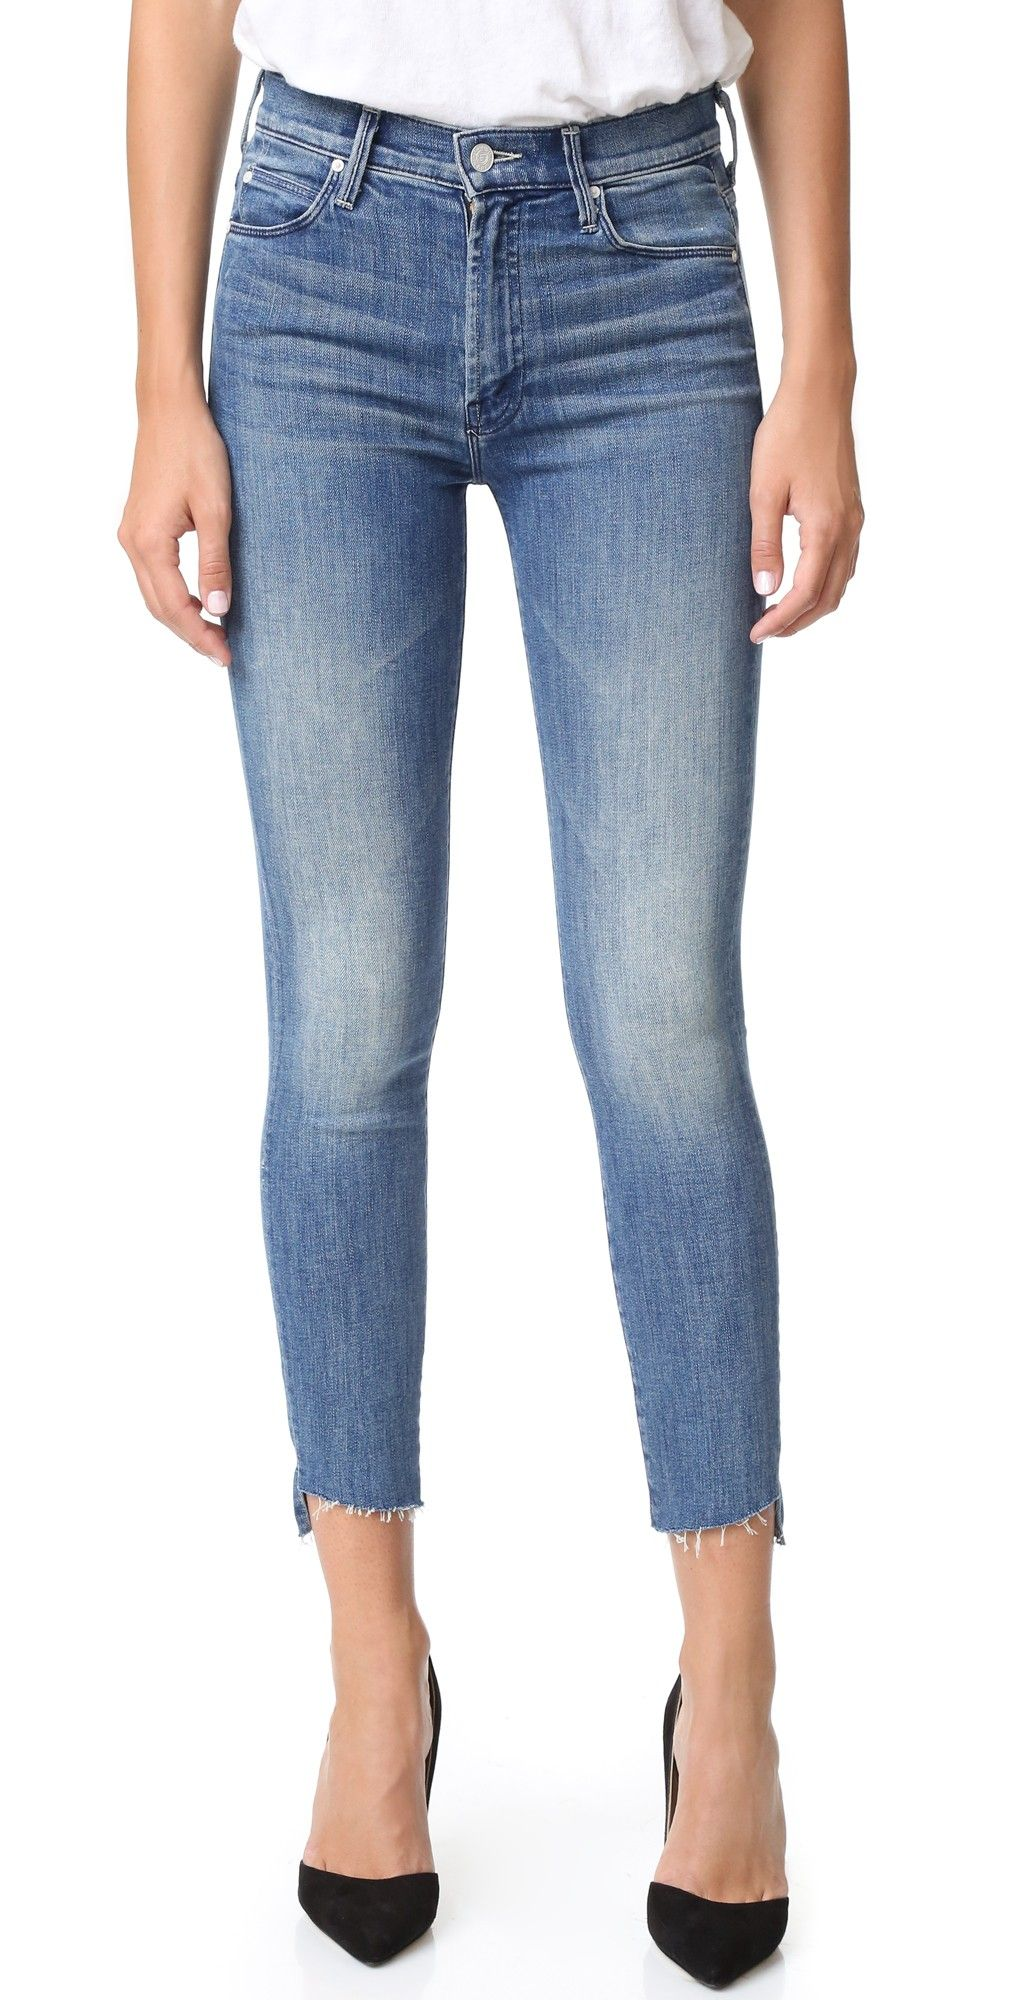 0efc37d012a97 MOTHER The Stunner Zip Ankle Step Fray Jeans